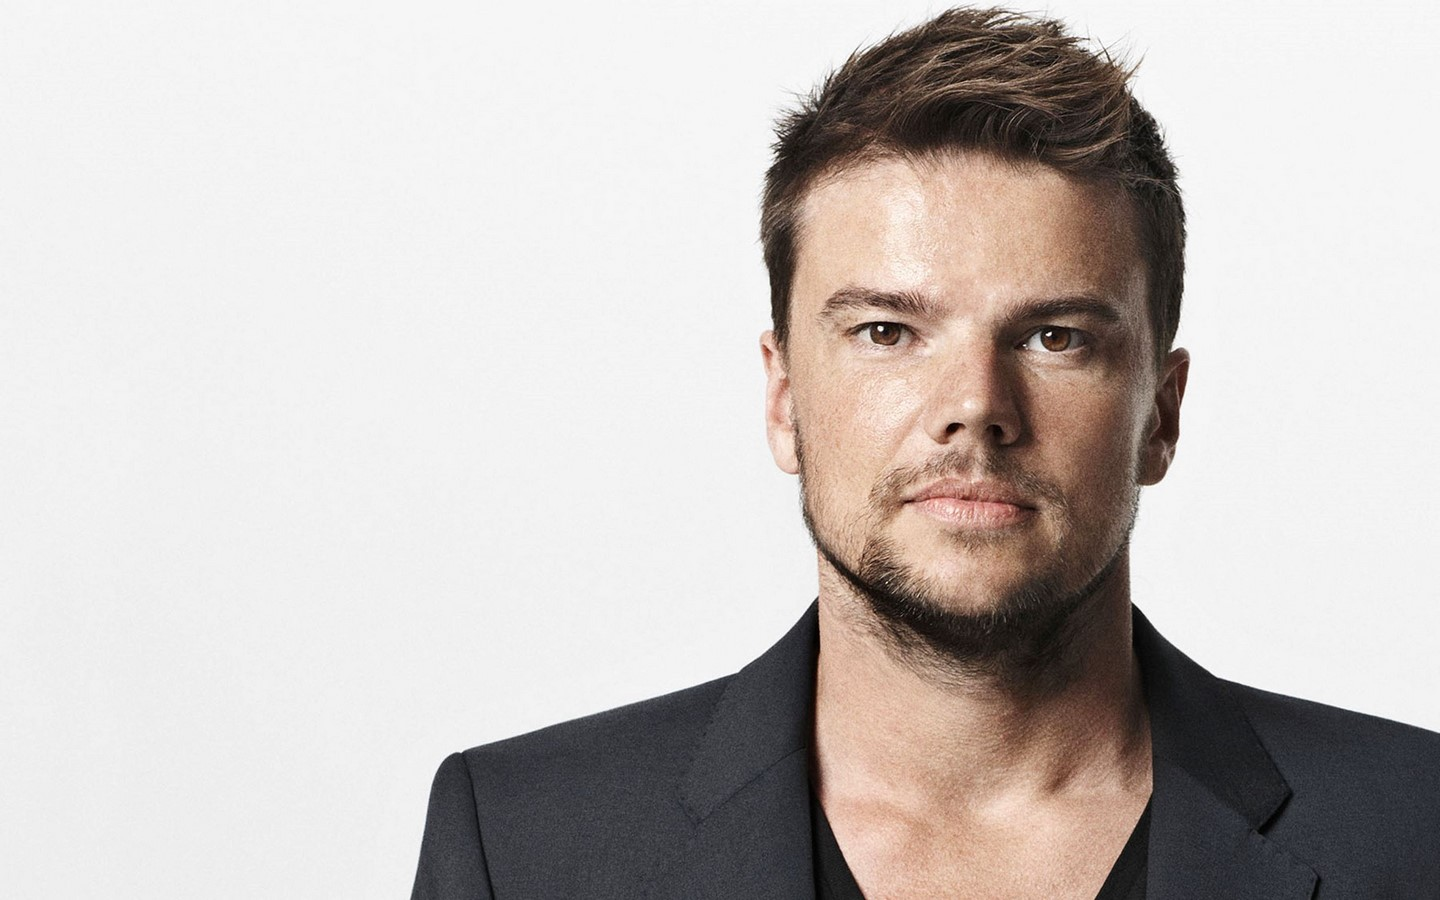 Interviews with Architects: Bjarke Ingels: Architecture should be more like Minecraft - Sheet1